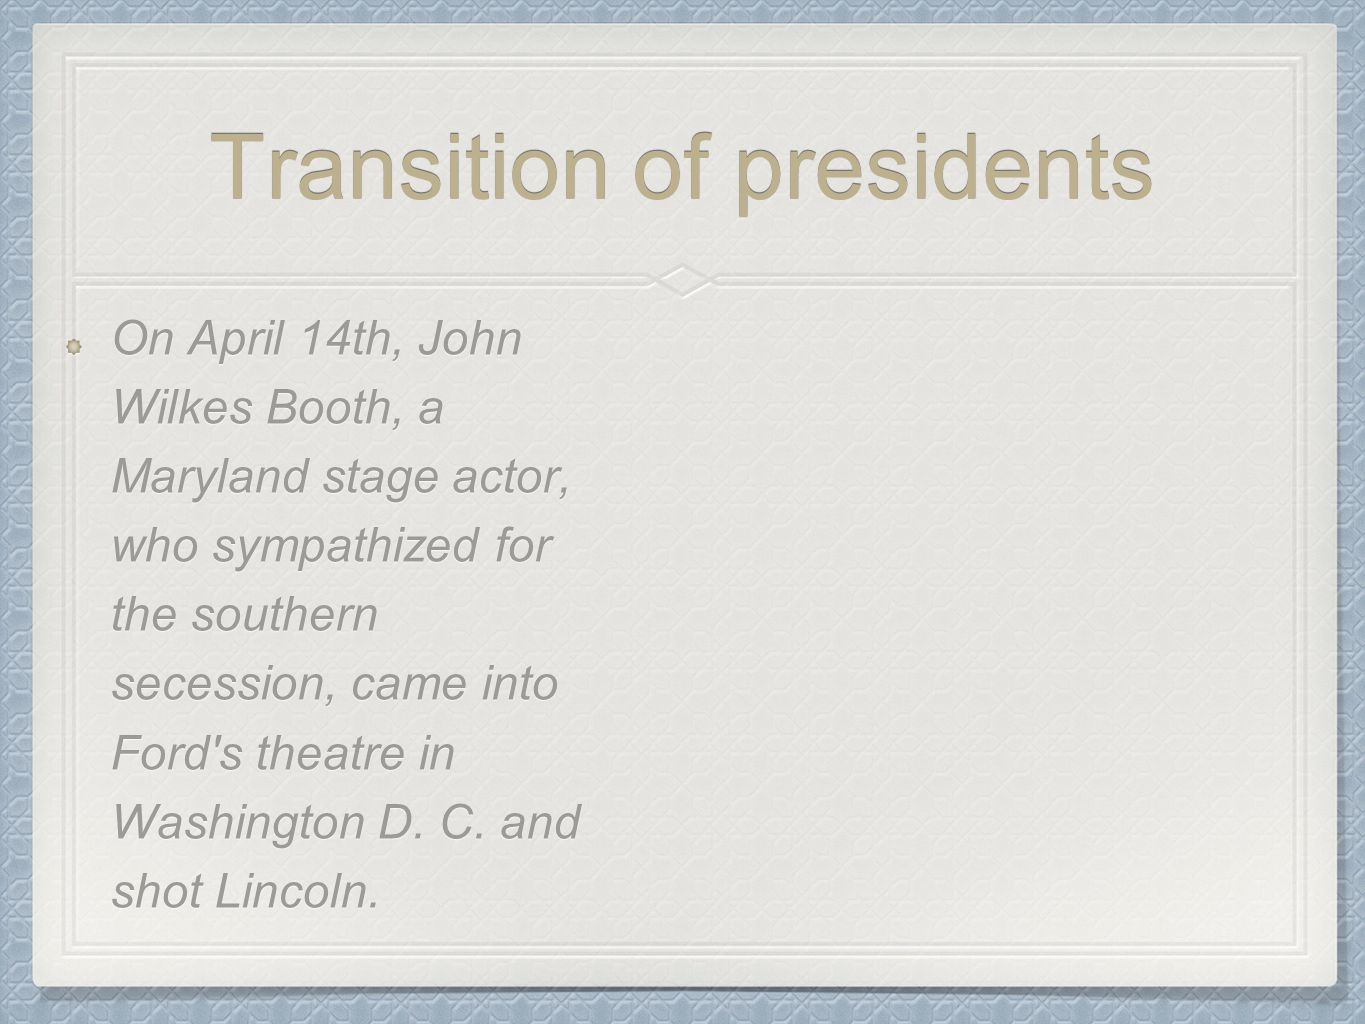 Transition of presidents